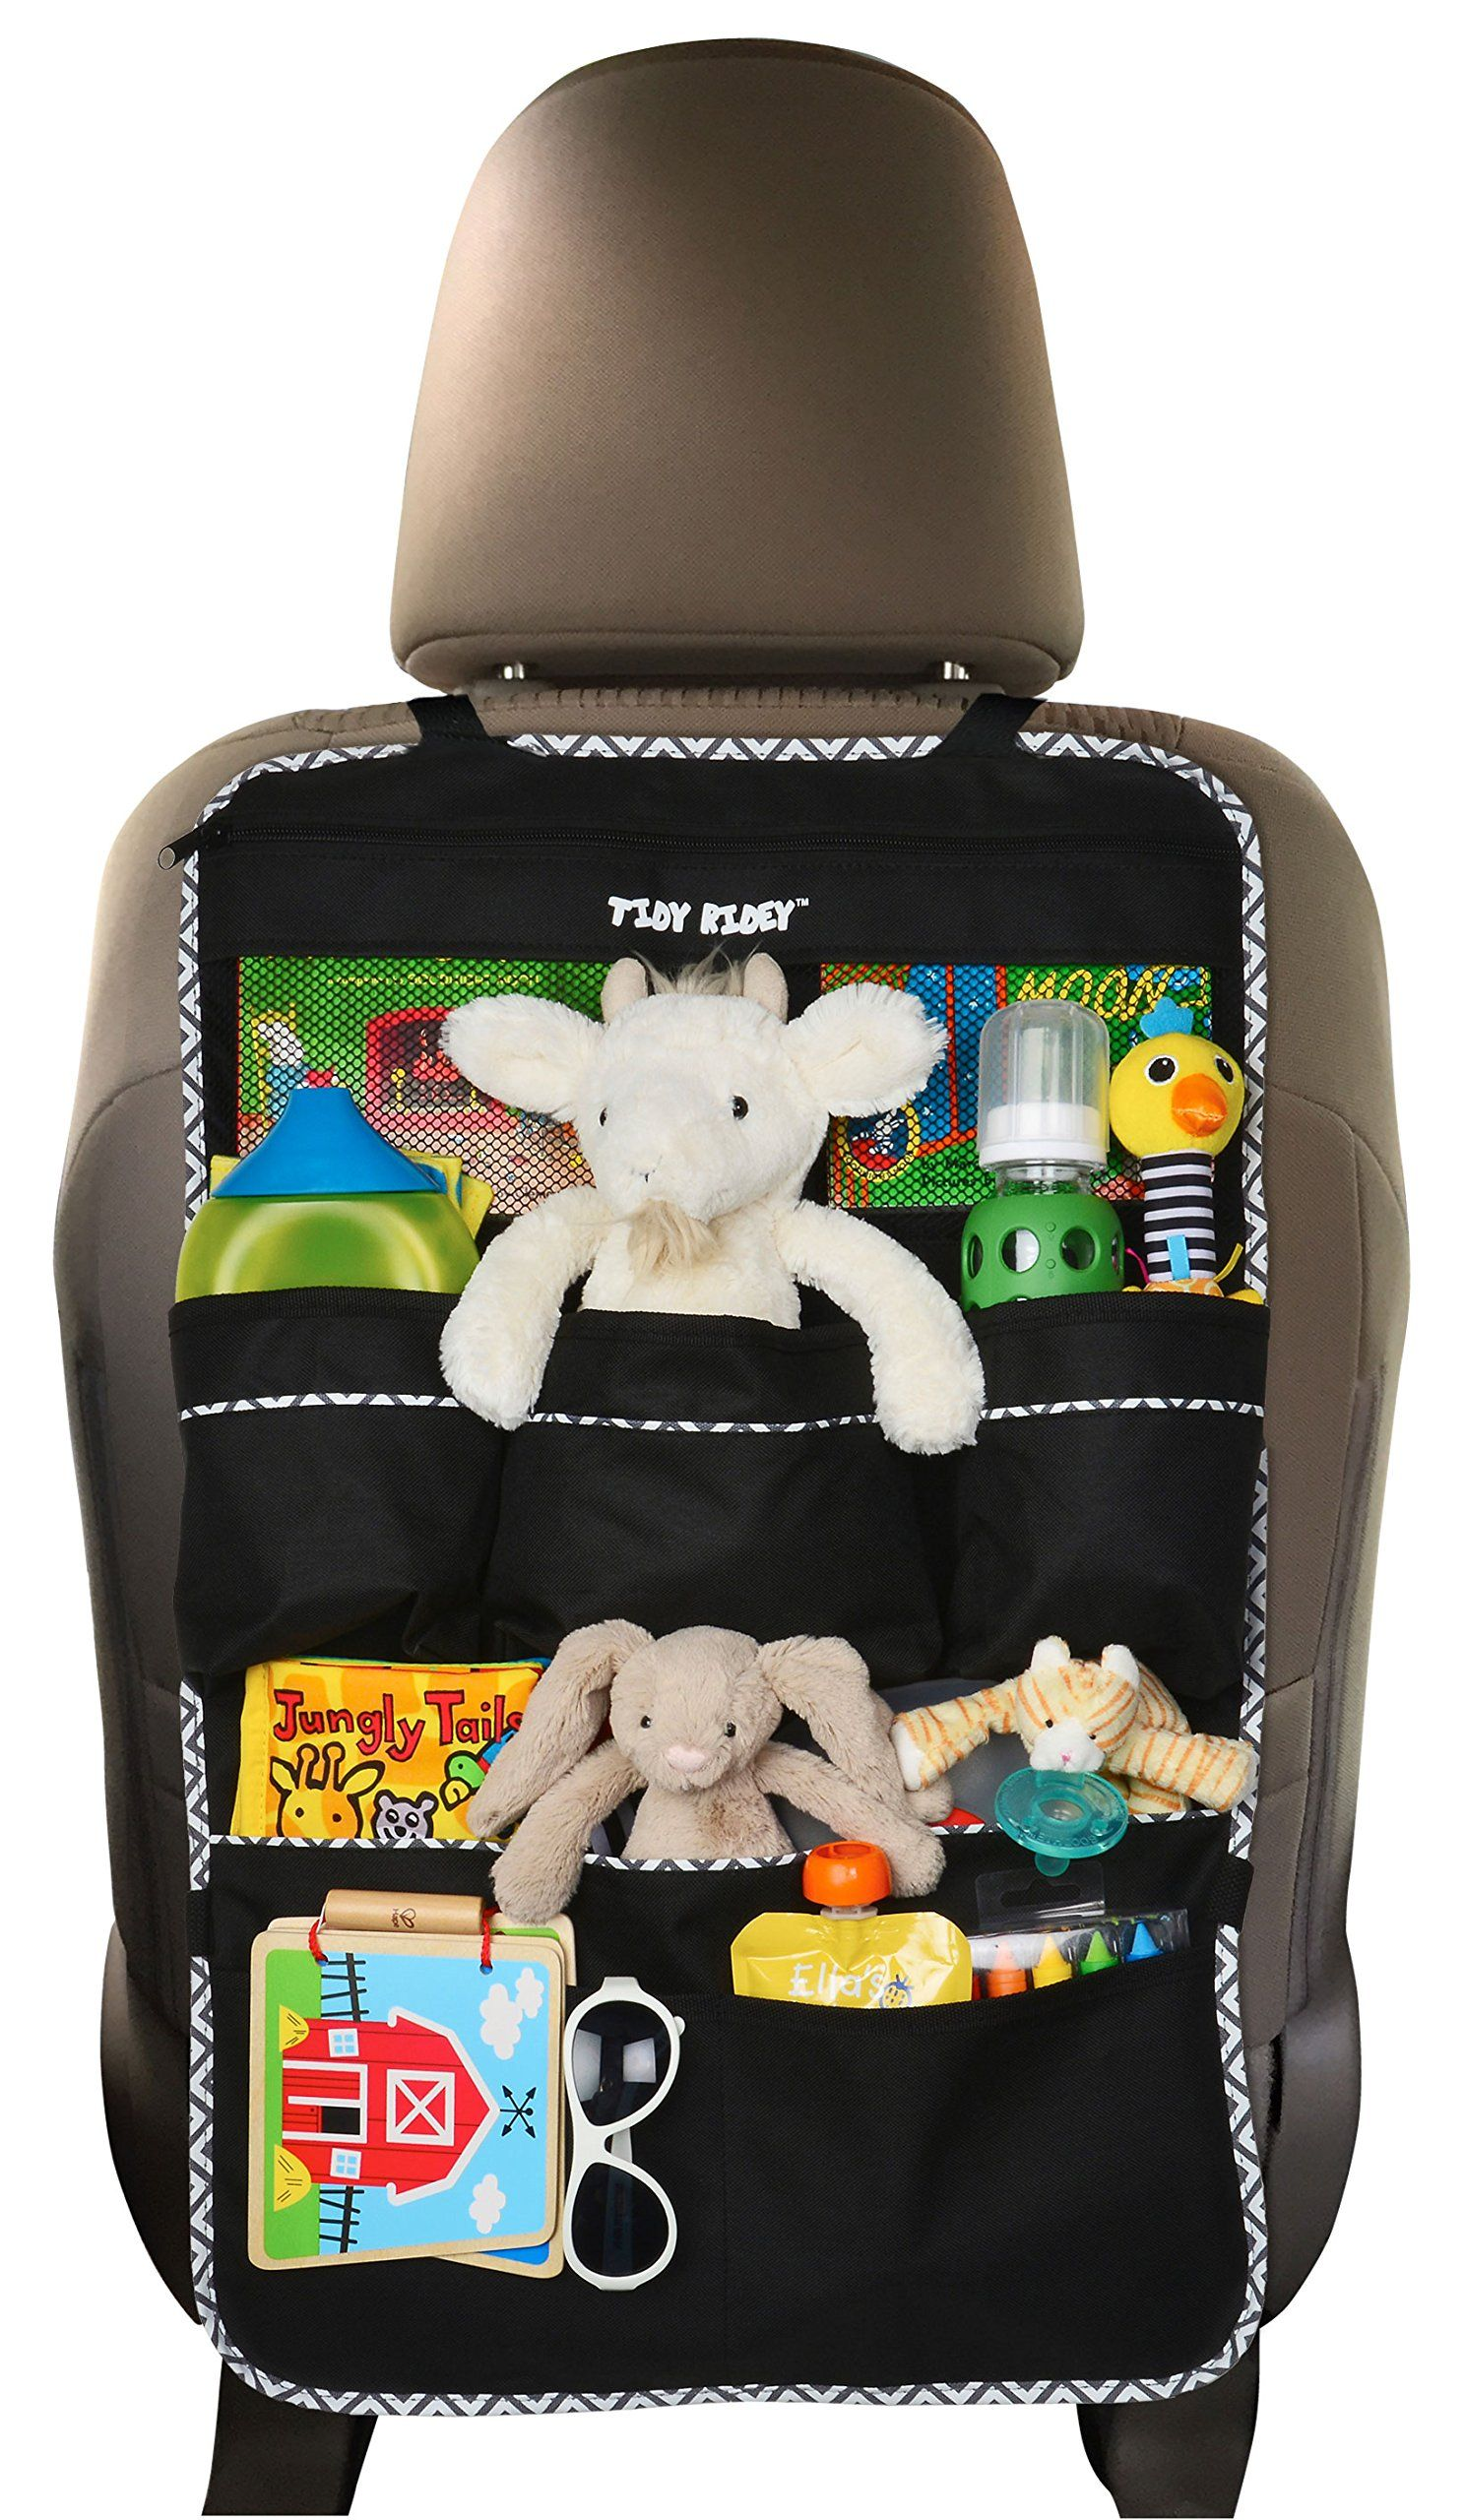 Premium Backseat Organizer For Kids Cars Extra Large Size Covers Back Of Seat E Book 1 Accessories Car Protector Made Durable